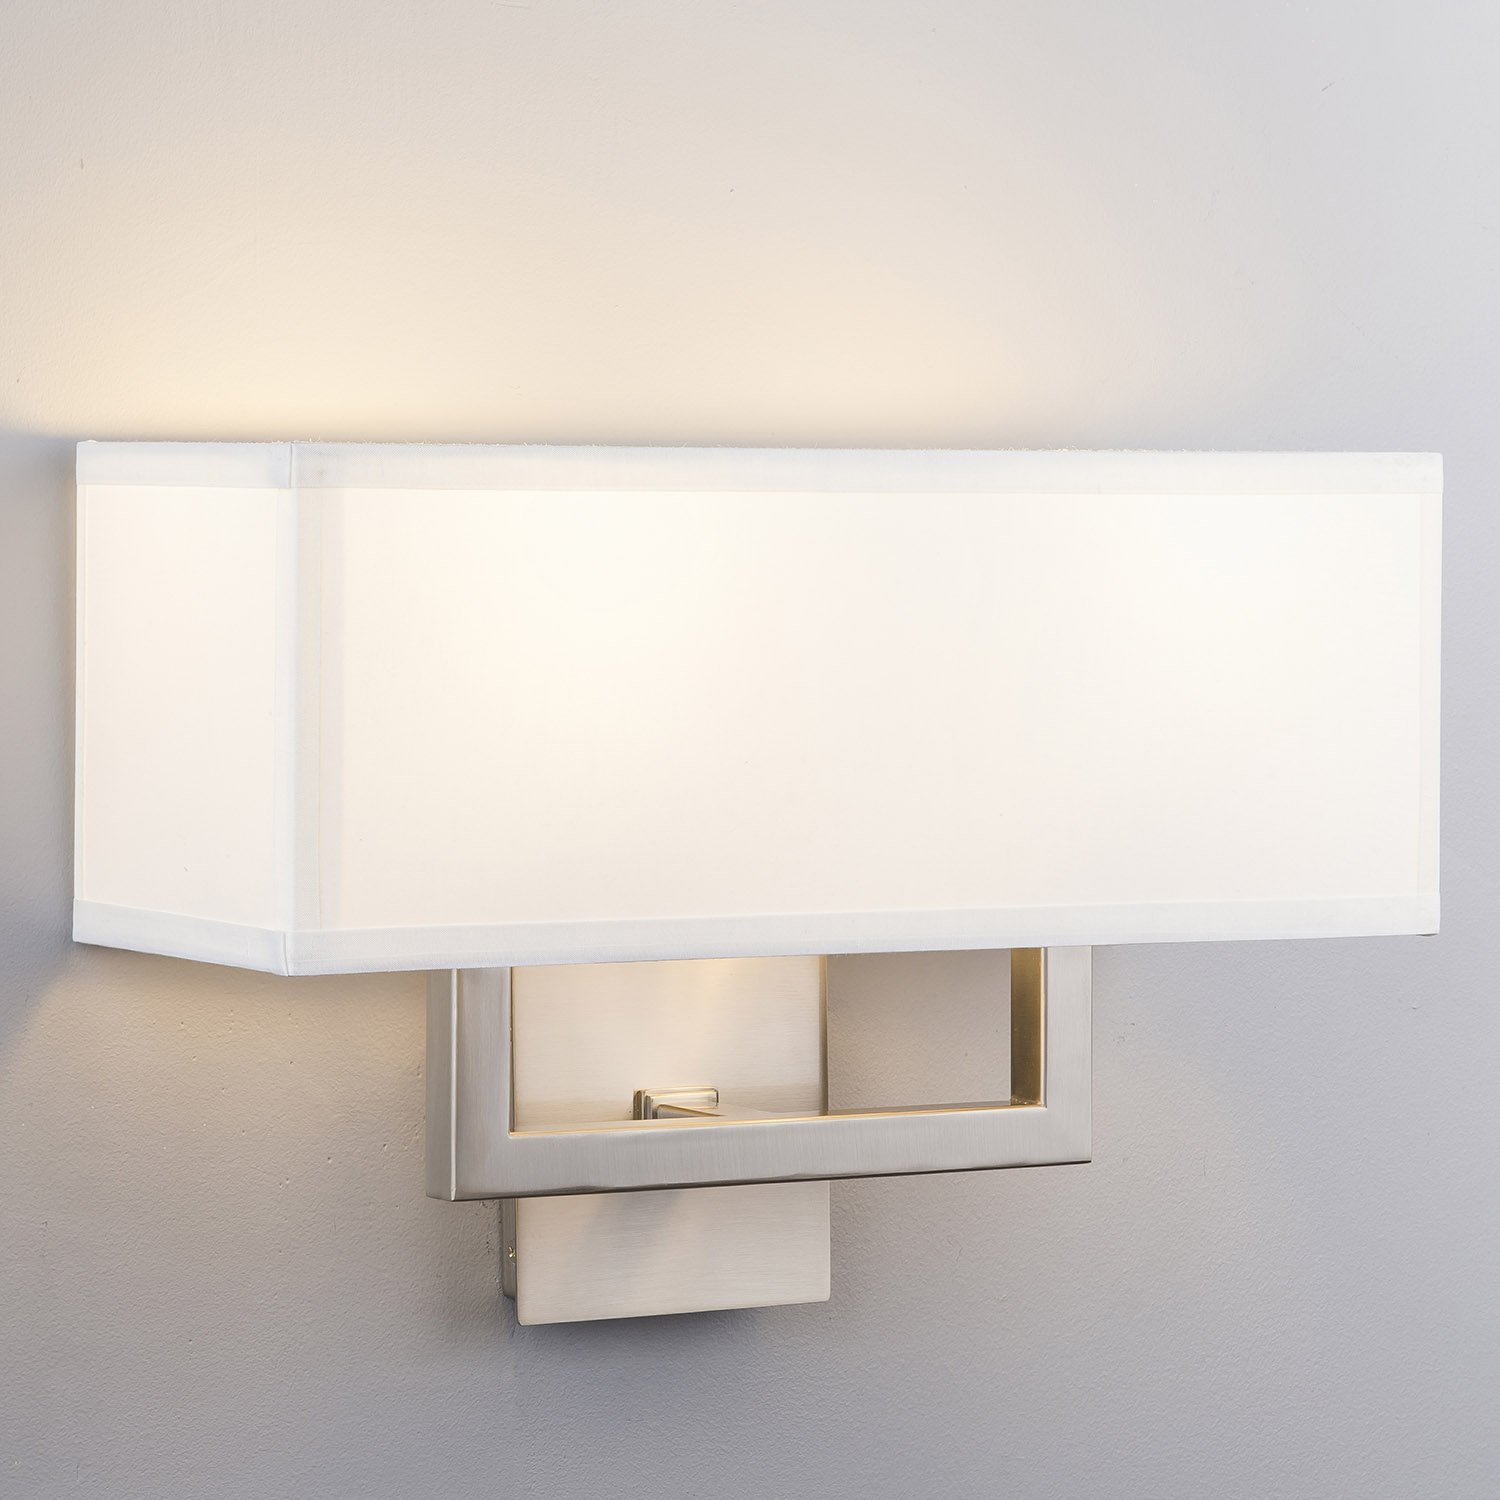 Sofia Wall Sconce 2 Light Brushed Nickel W White Fabric Shade